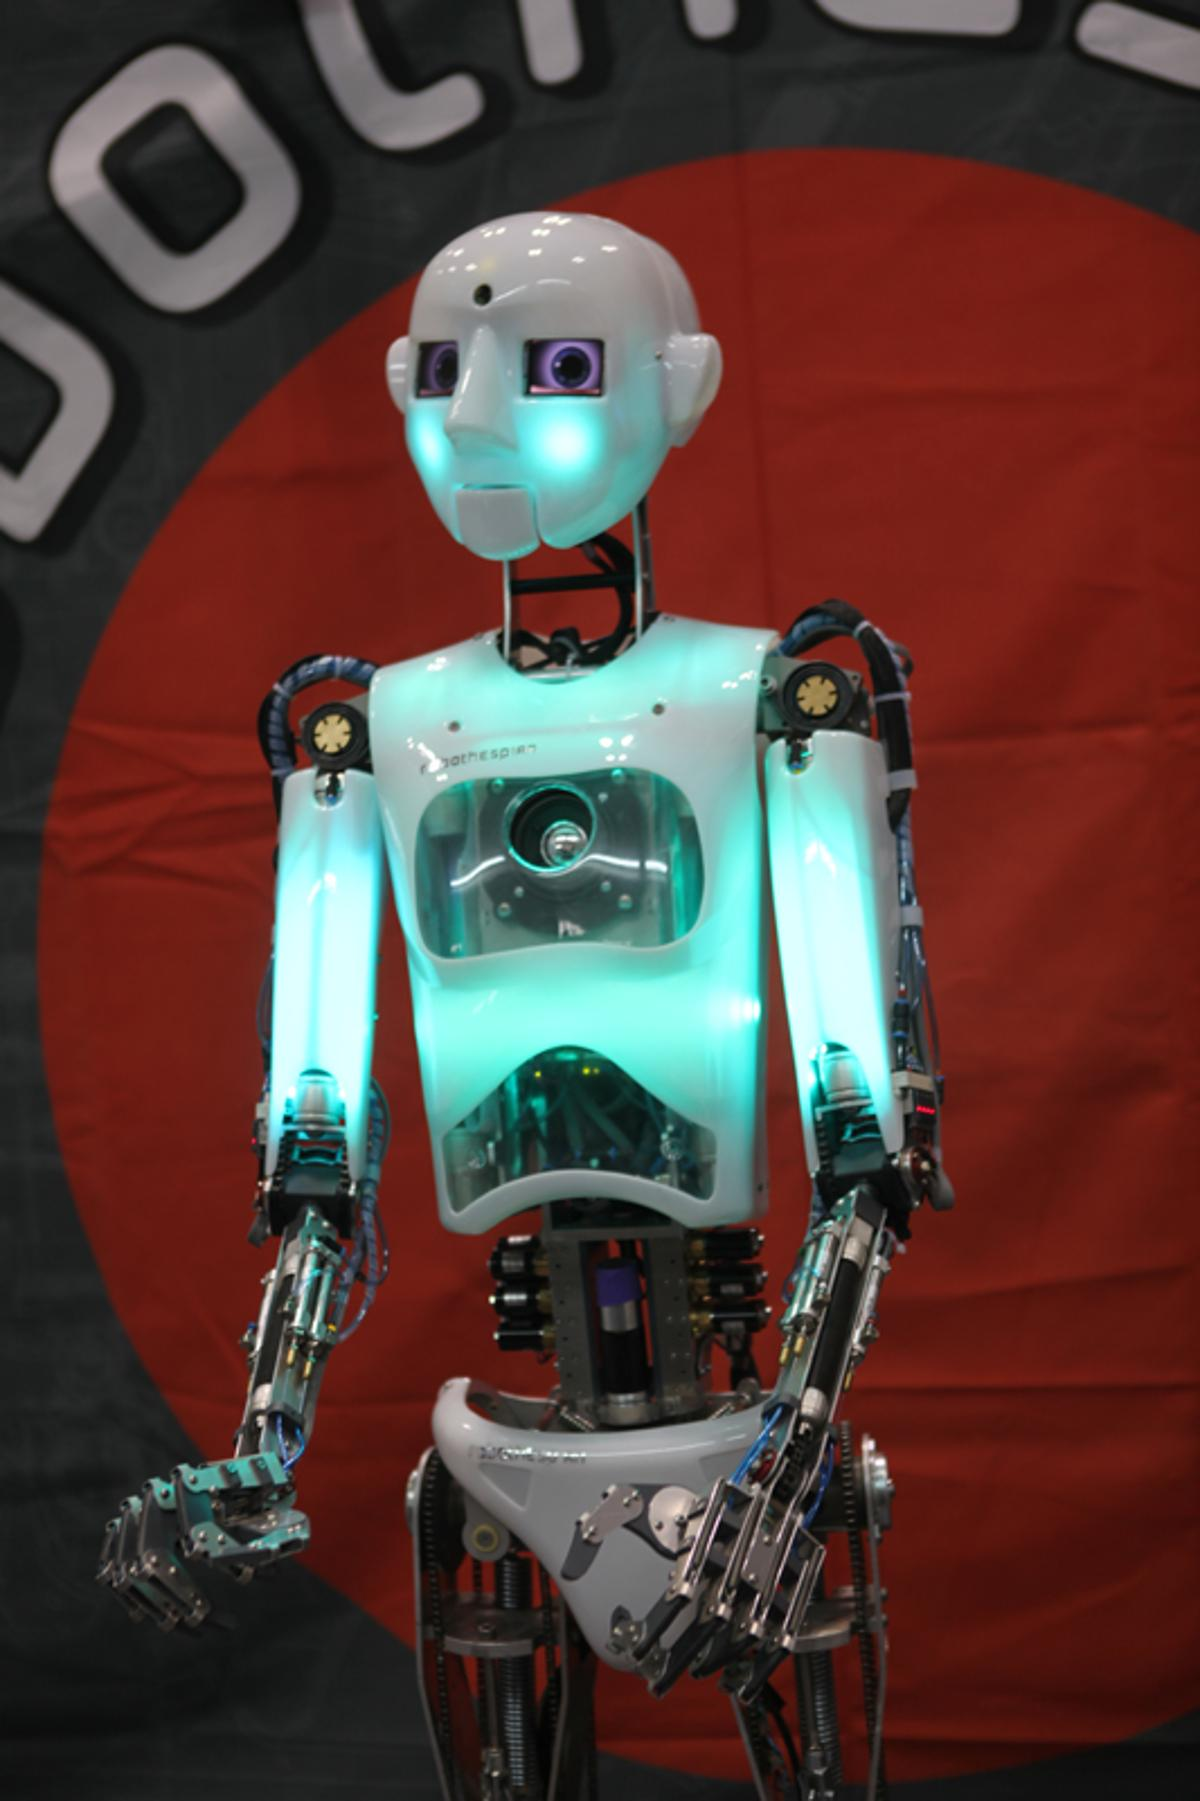 The Robothespian presentation, telepresence and acting humanoid robot by Engineered Arts Ltd. is designed for science education purposes